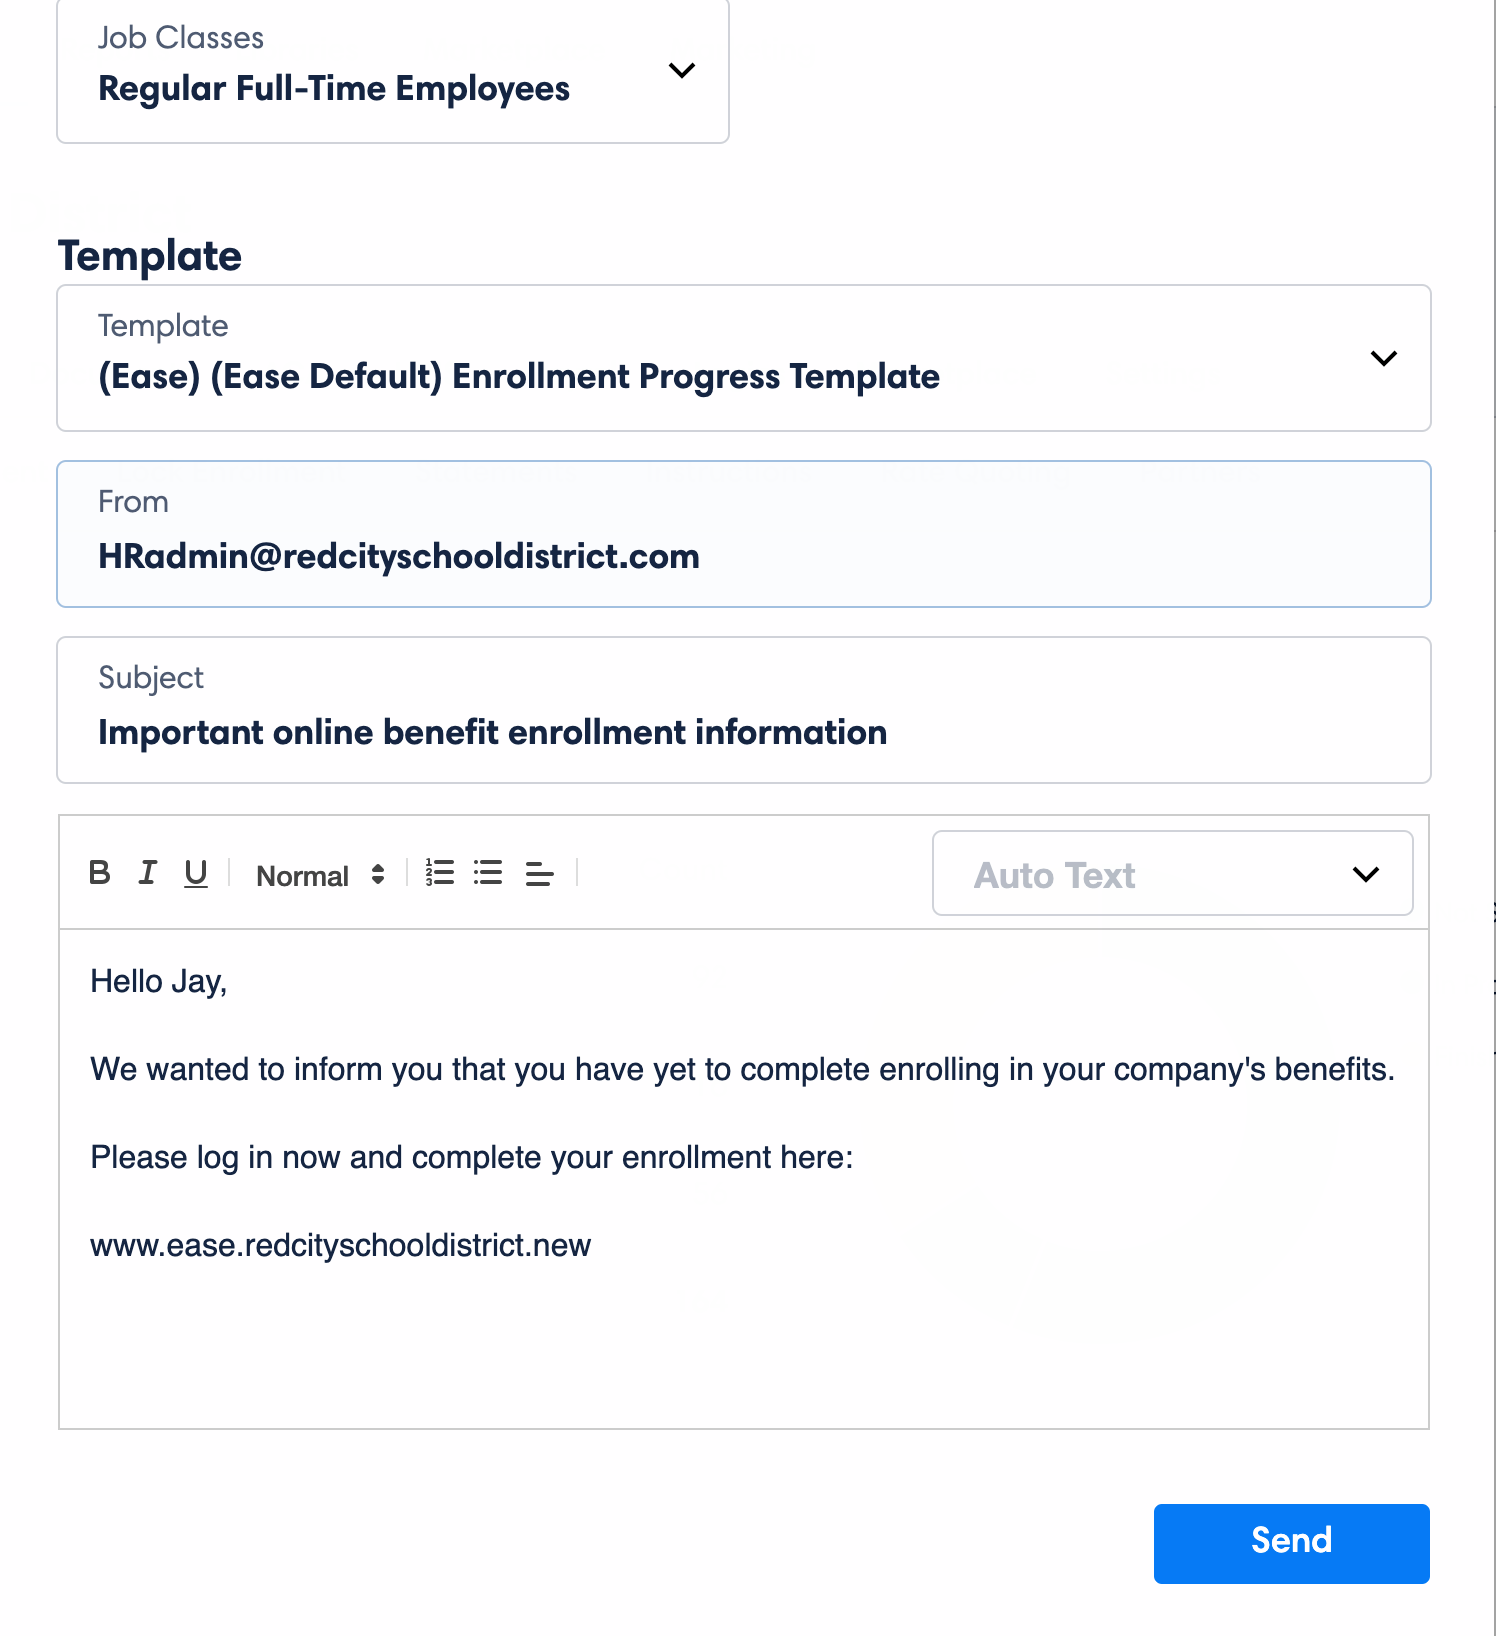 Ease emailing employees